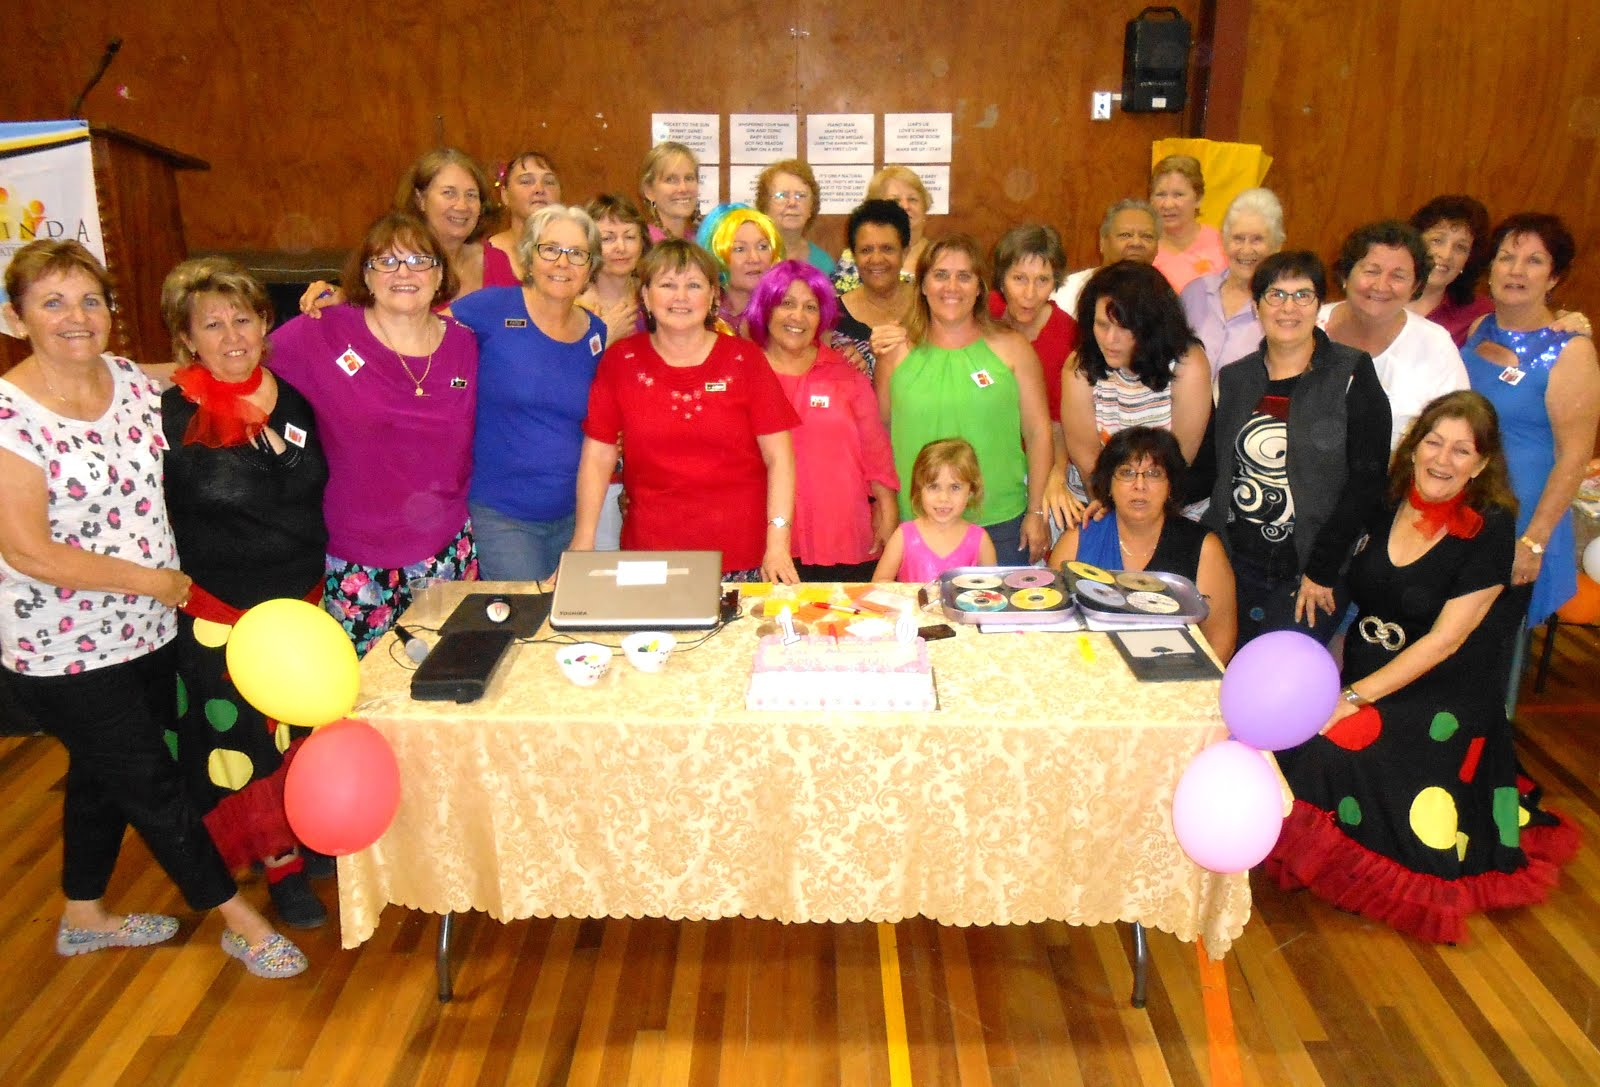 Babinda's 10th Birthday,